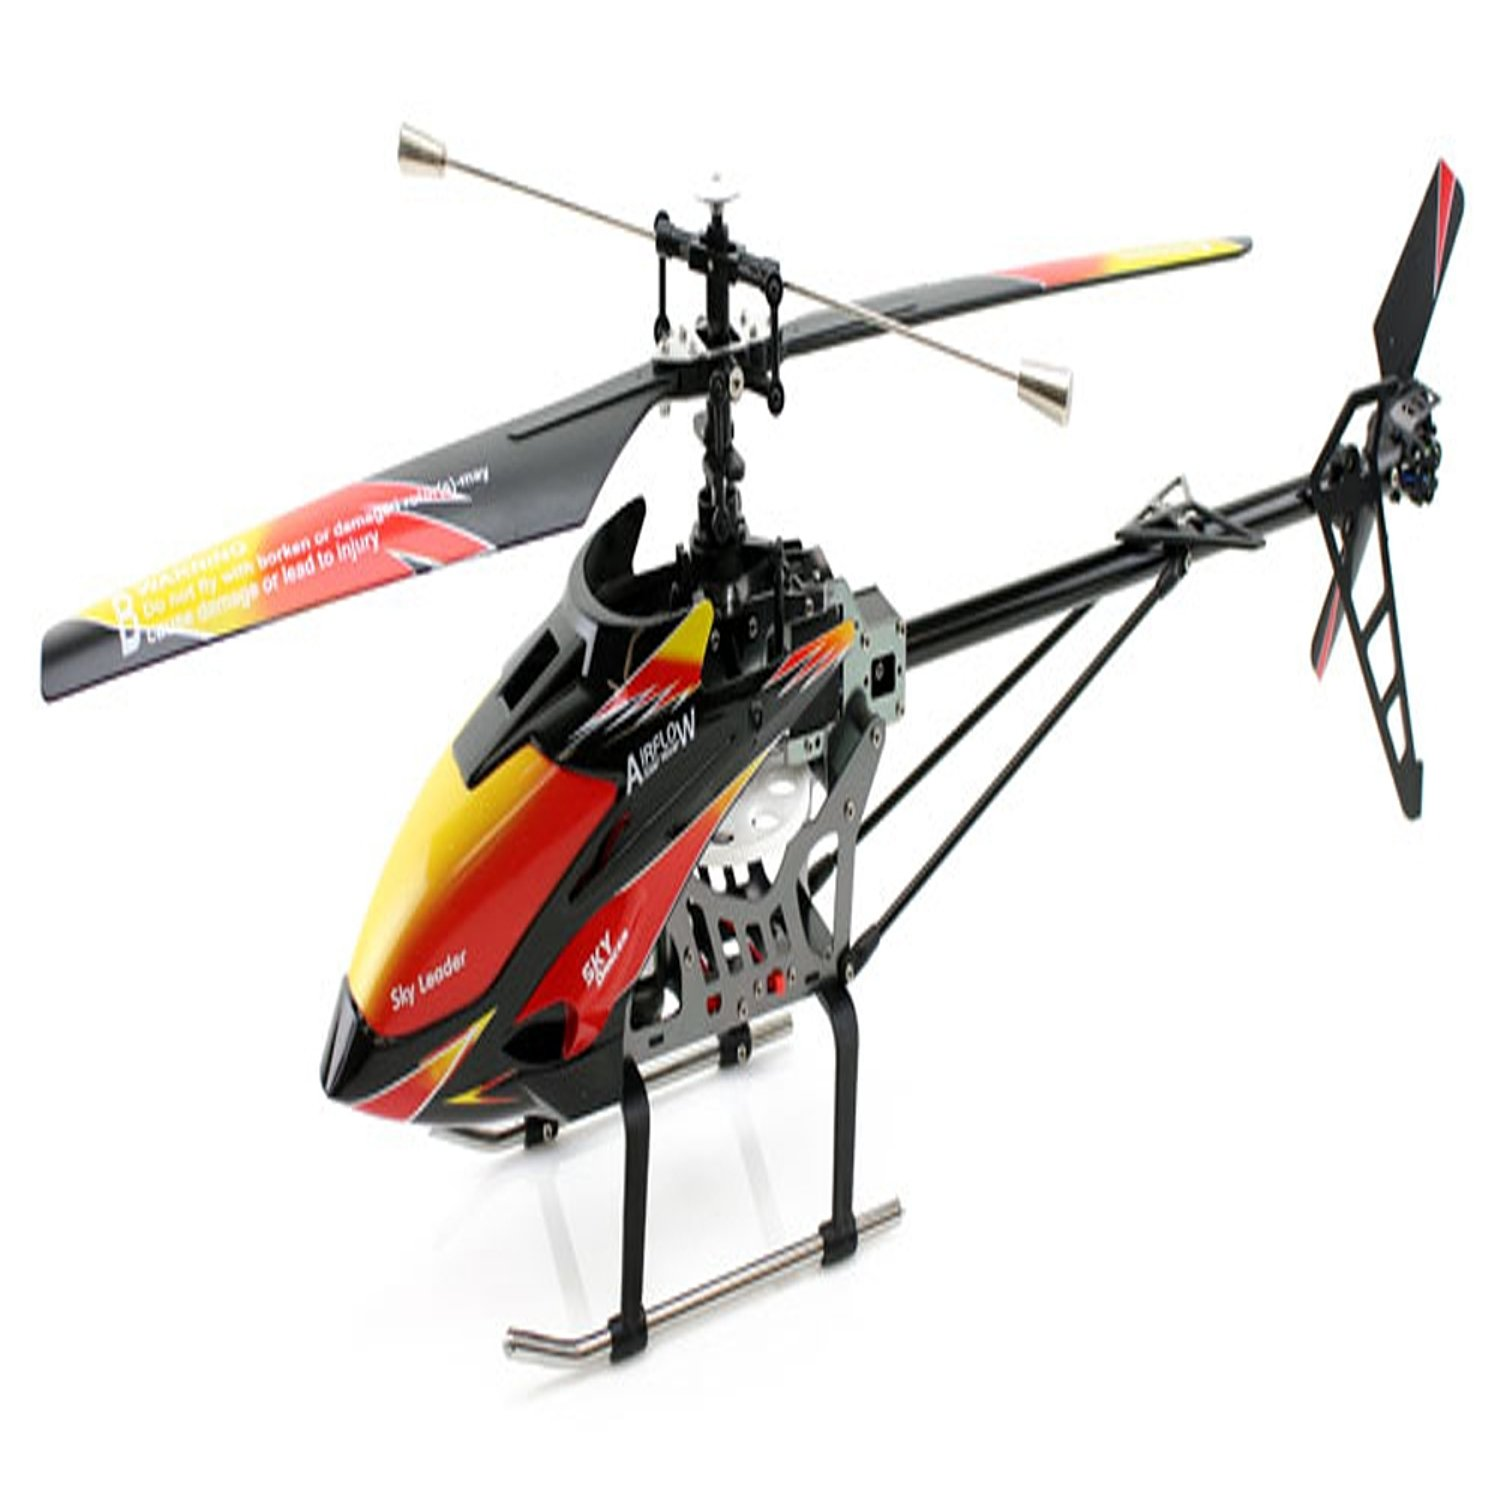 Best Deals on RC Helicopters